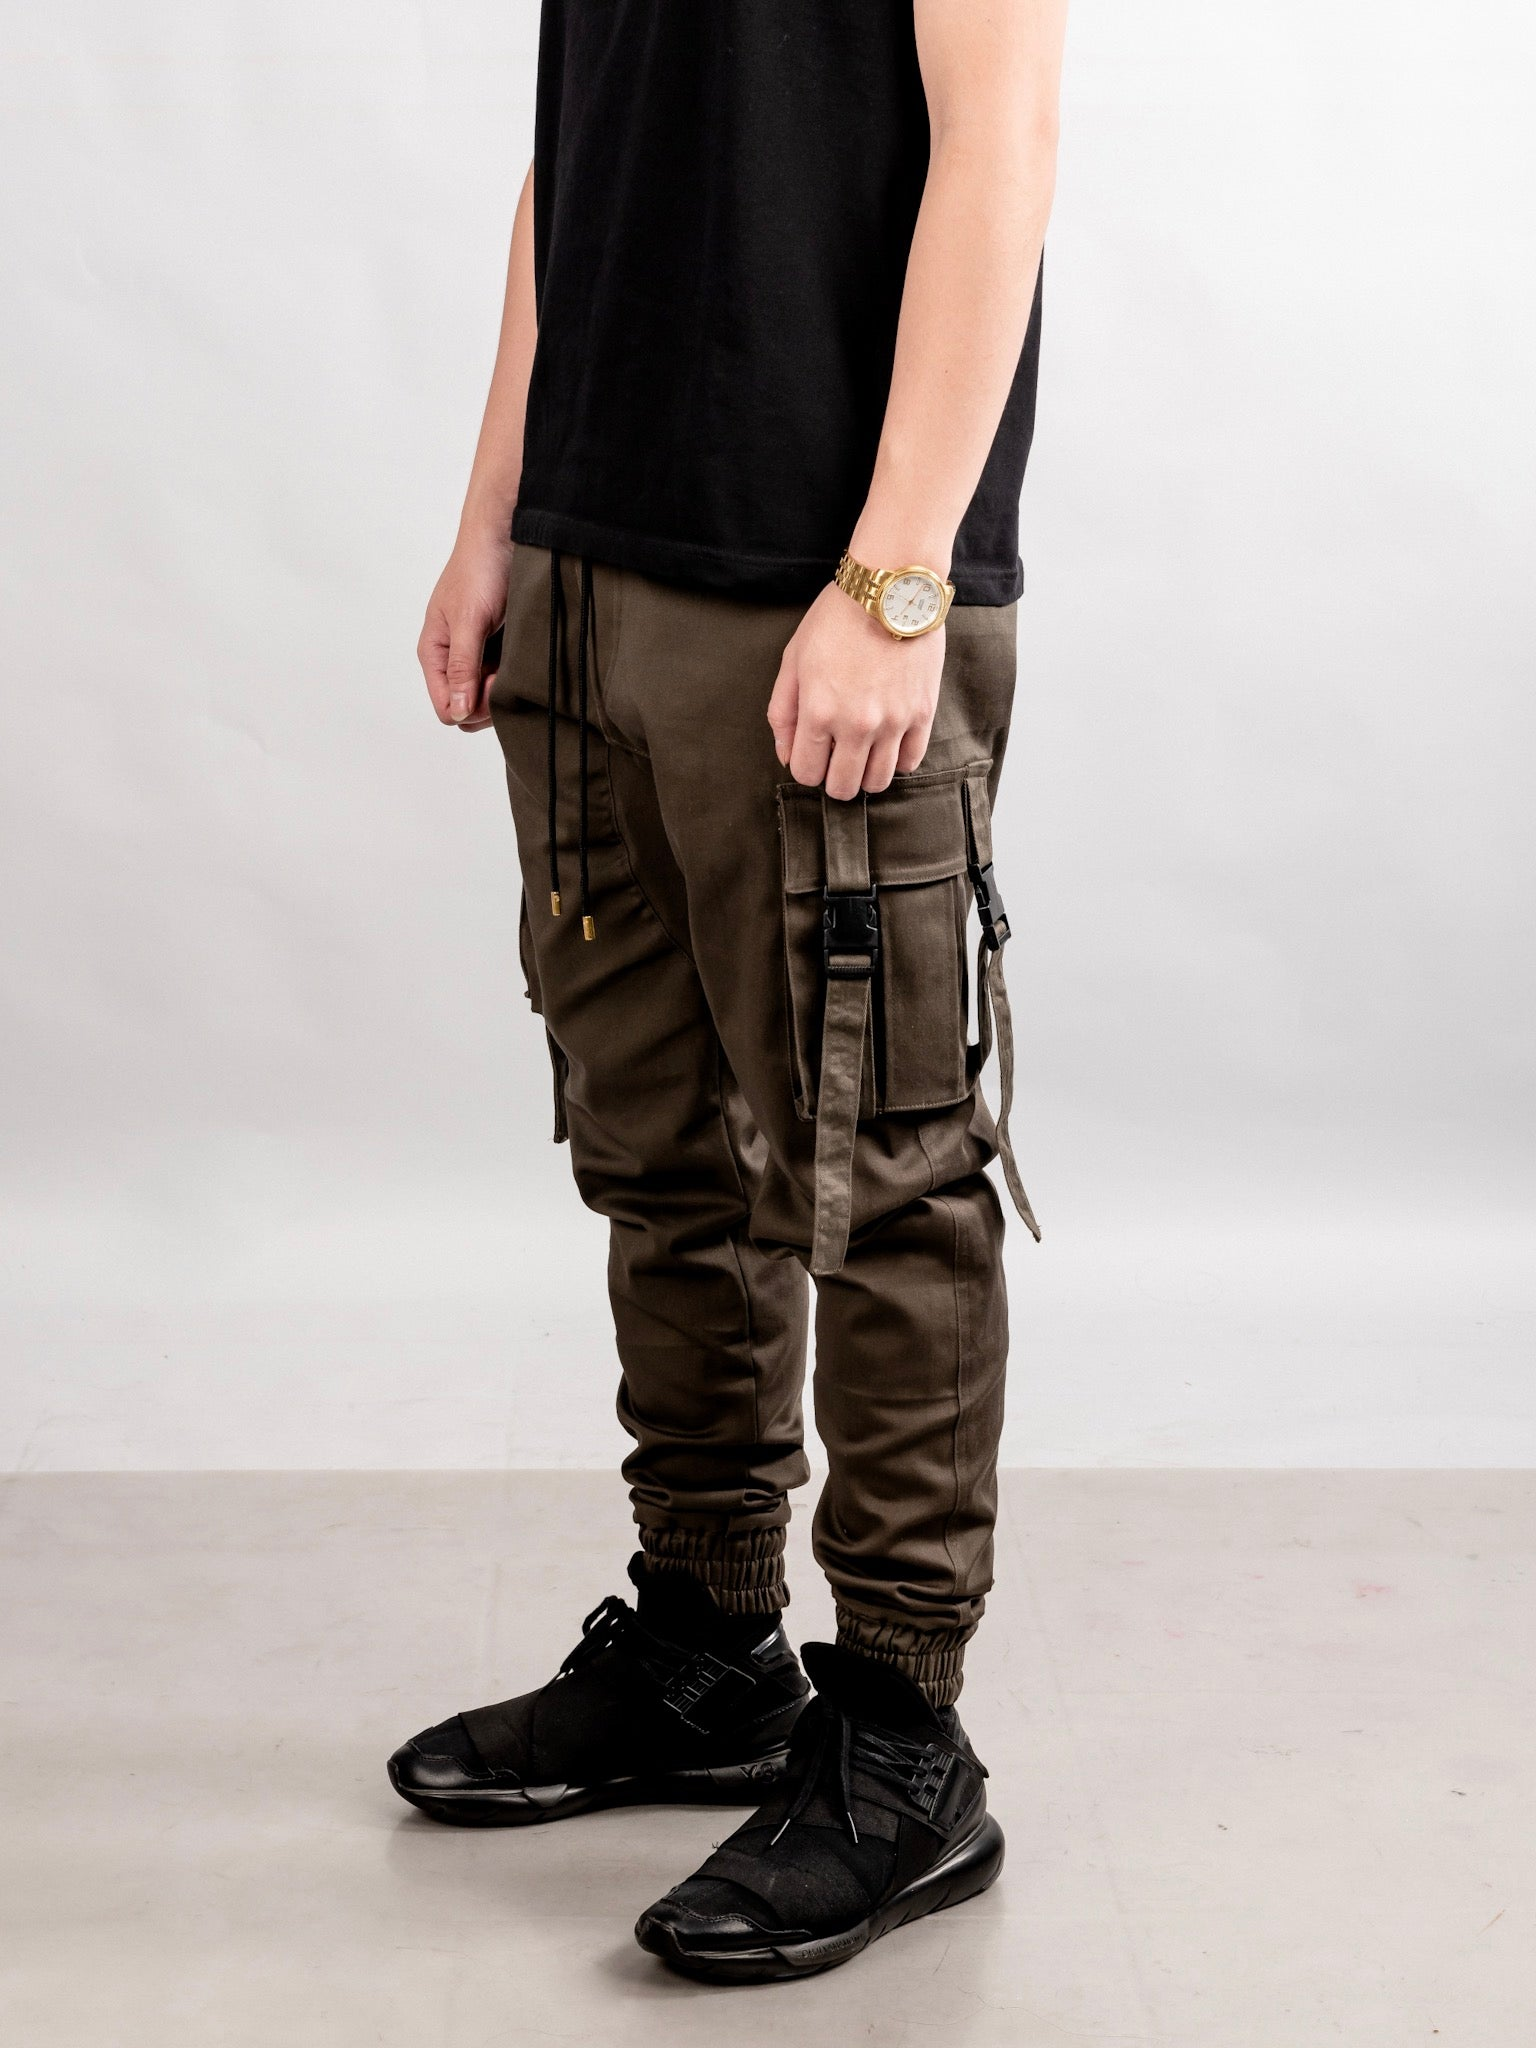 4 POCKETS BUCKLE PANTS - DARK GRAY